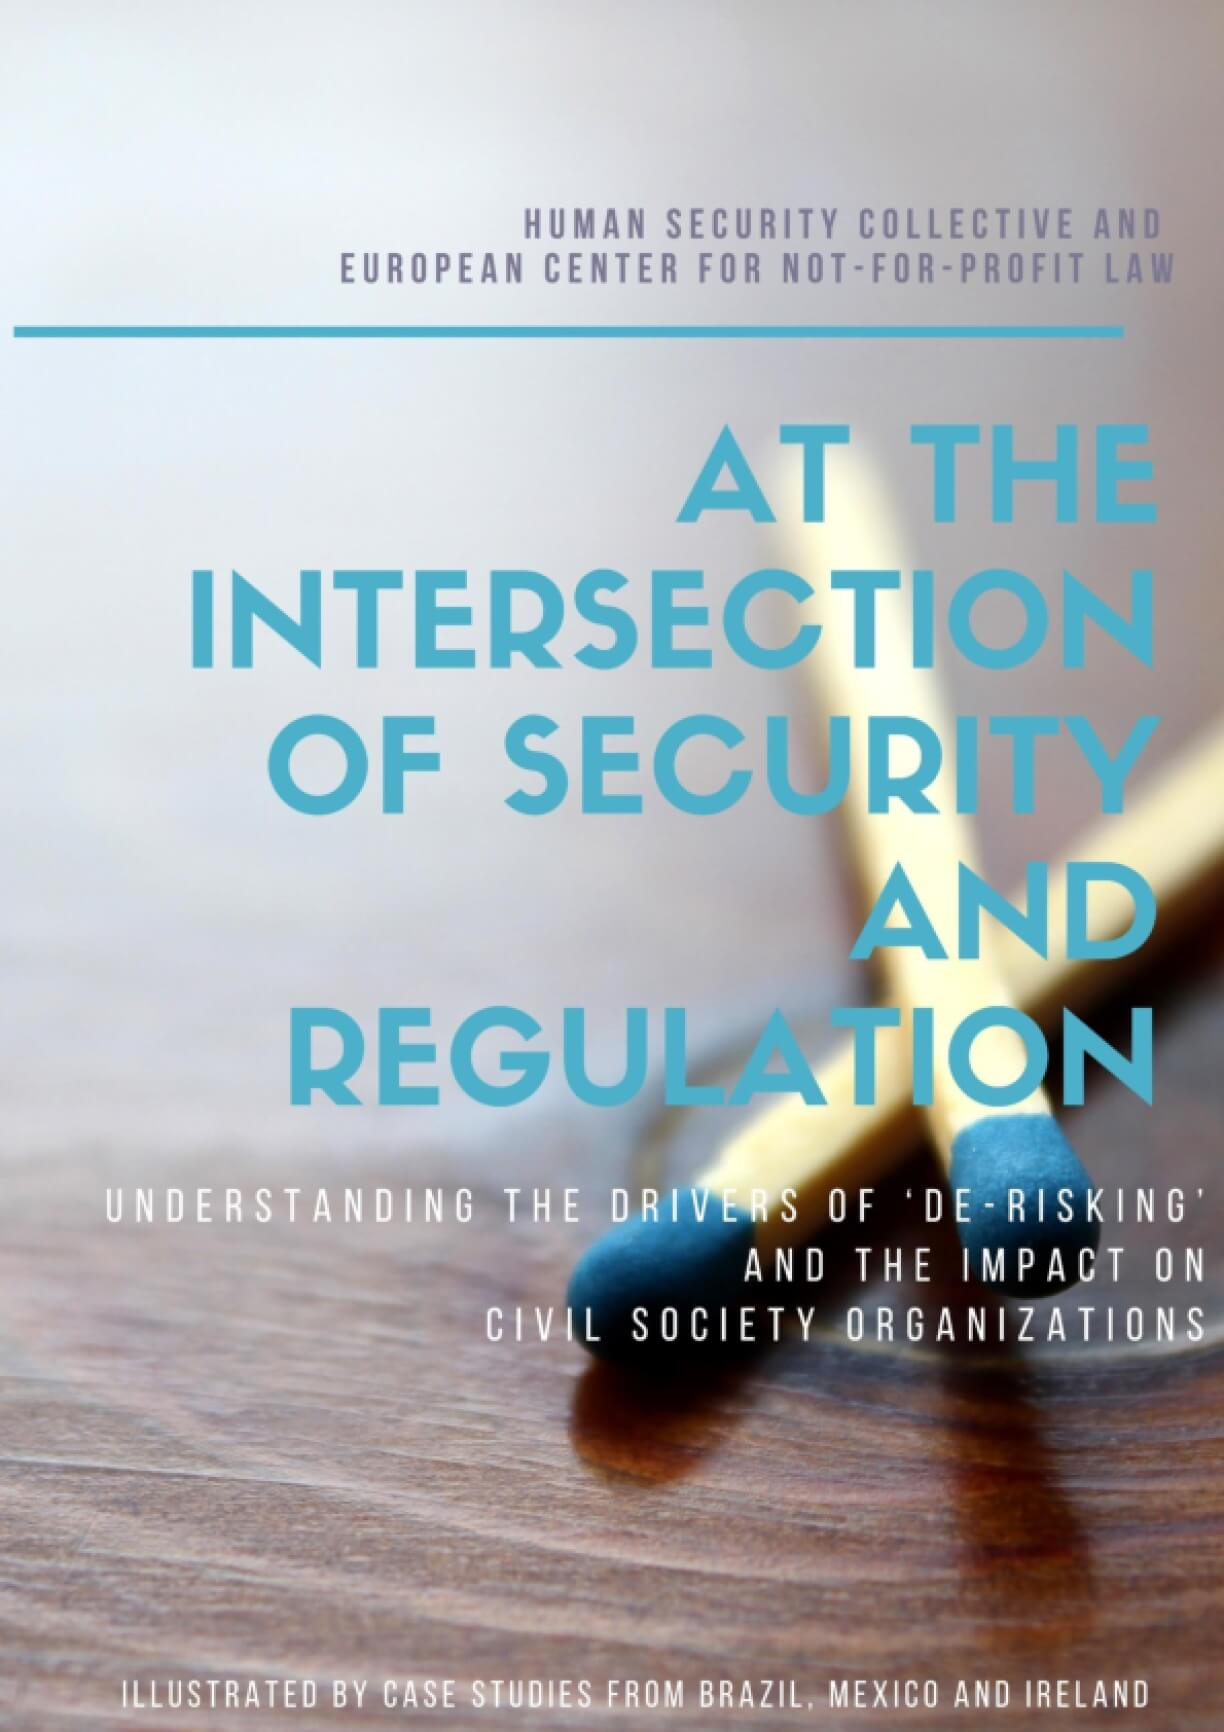 Understanding the Drivers of 'De-risking' and the Impact on Civil Society Organizations